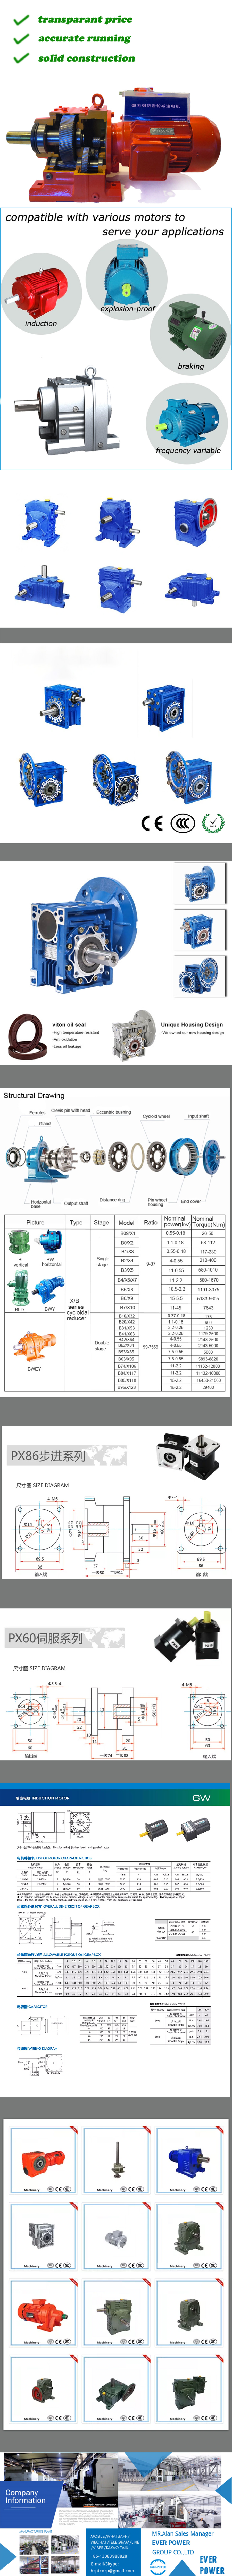 in Genoa Italy  sales   price   shop   near me   near me shop   factory   supplier Gear Reducer Box Gearbox Reducer Speed Drive Reduction Electric Motor Good Price Transmission Prices Variator Sumitomo Excavator High Rpm China Gear Reducer Box manufacturer   best   Cost   Custom   Cheap   wholesaler